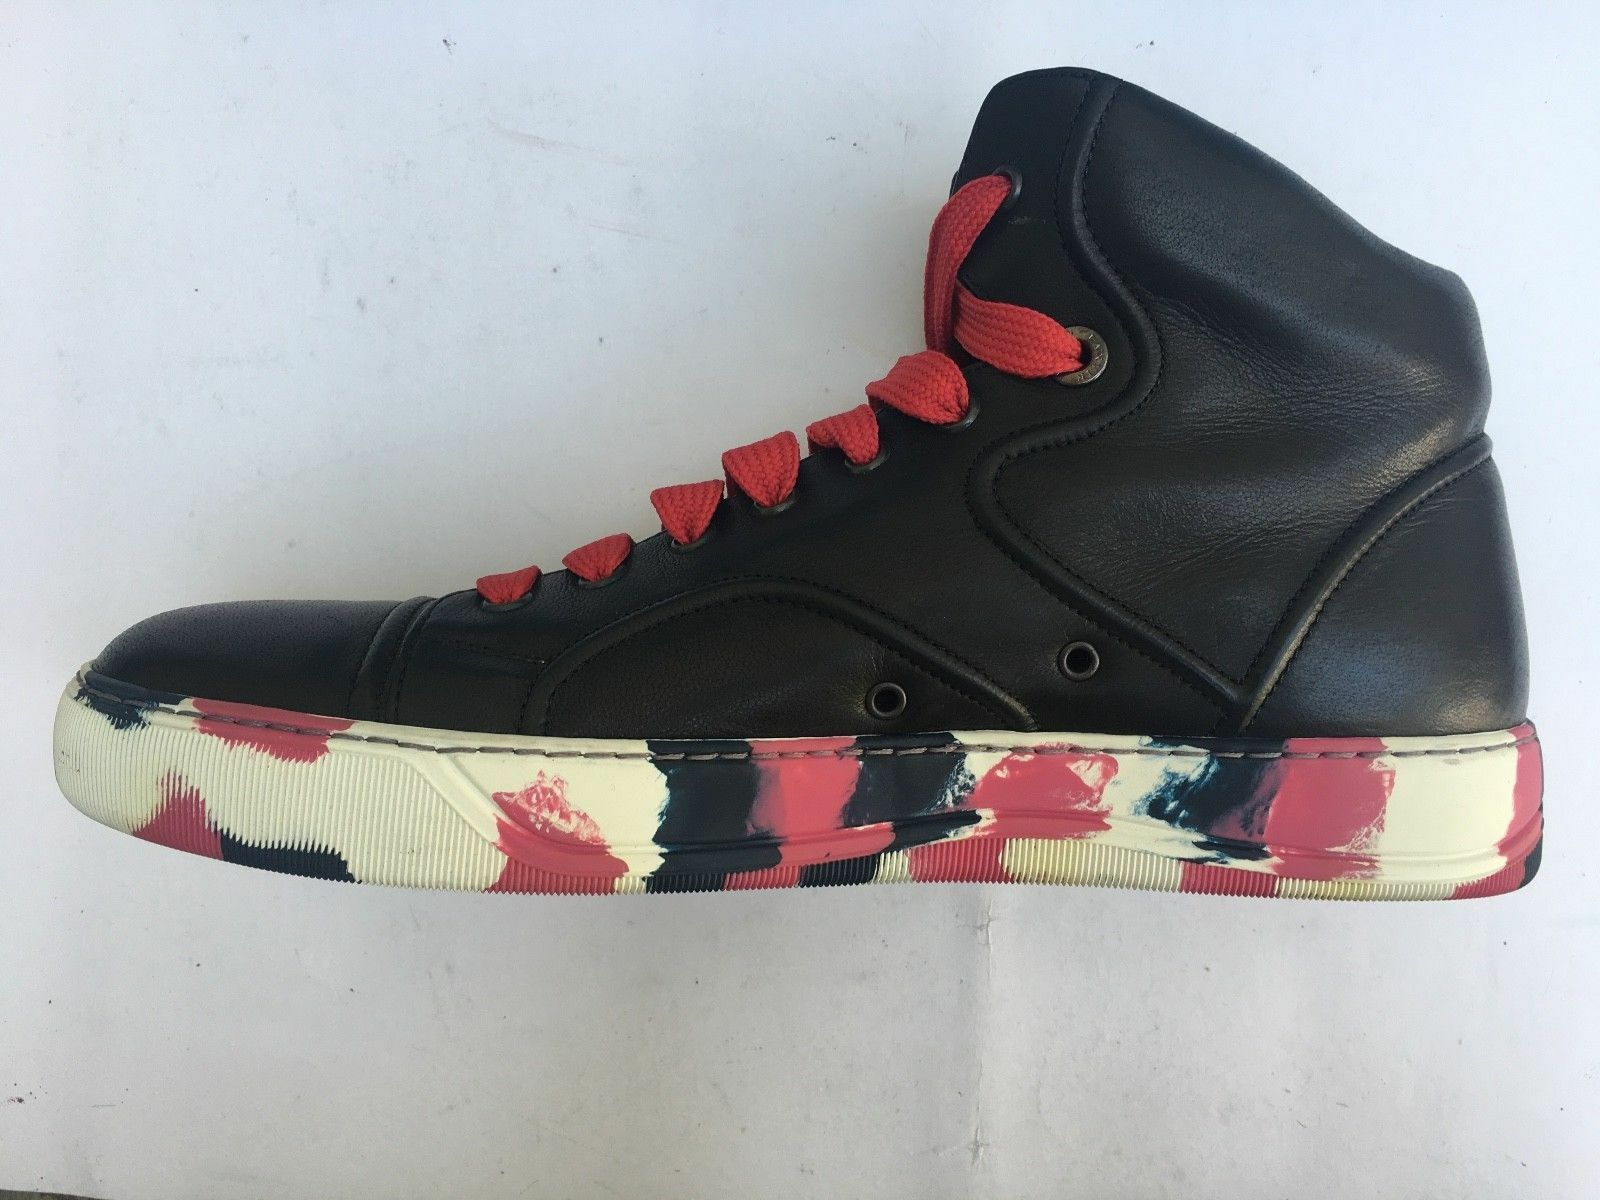 LANVIN High Top Sneakers Trainers Black Leather Camouflage Sole EU41 US8.5 UK7